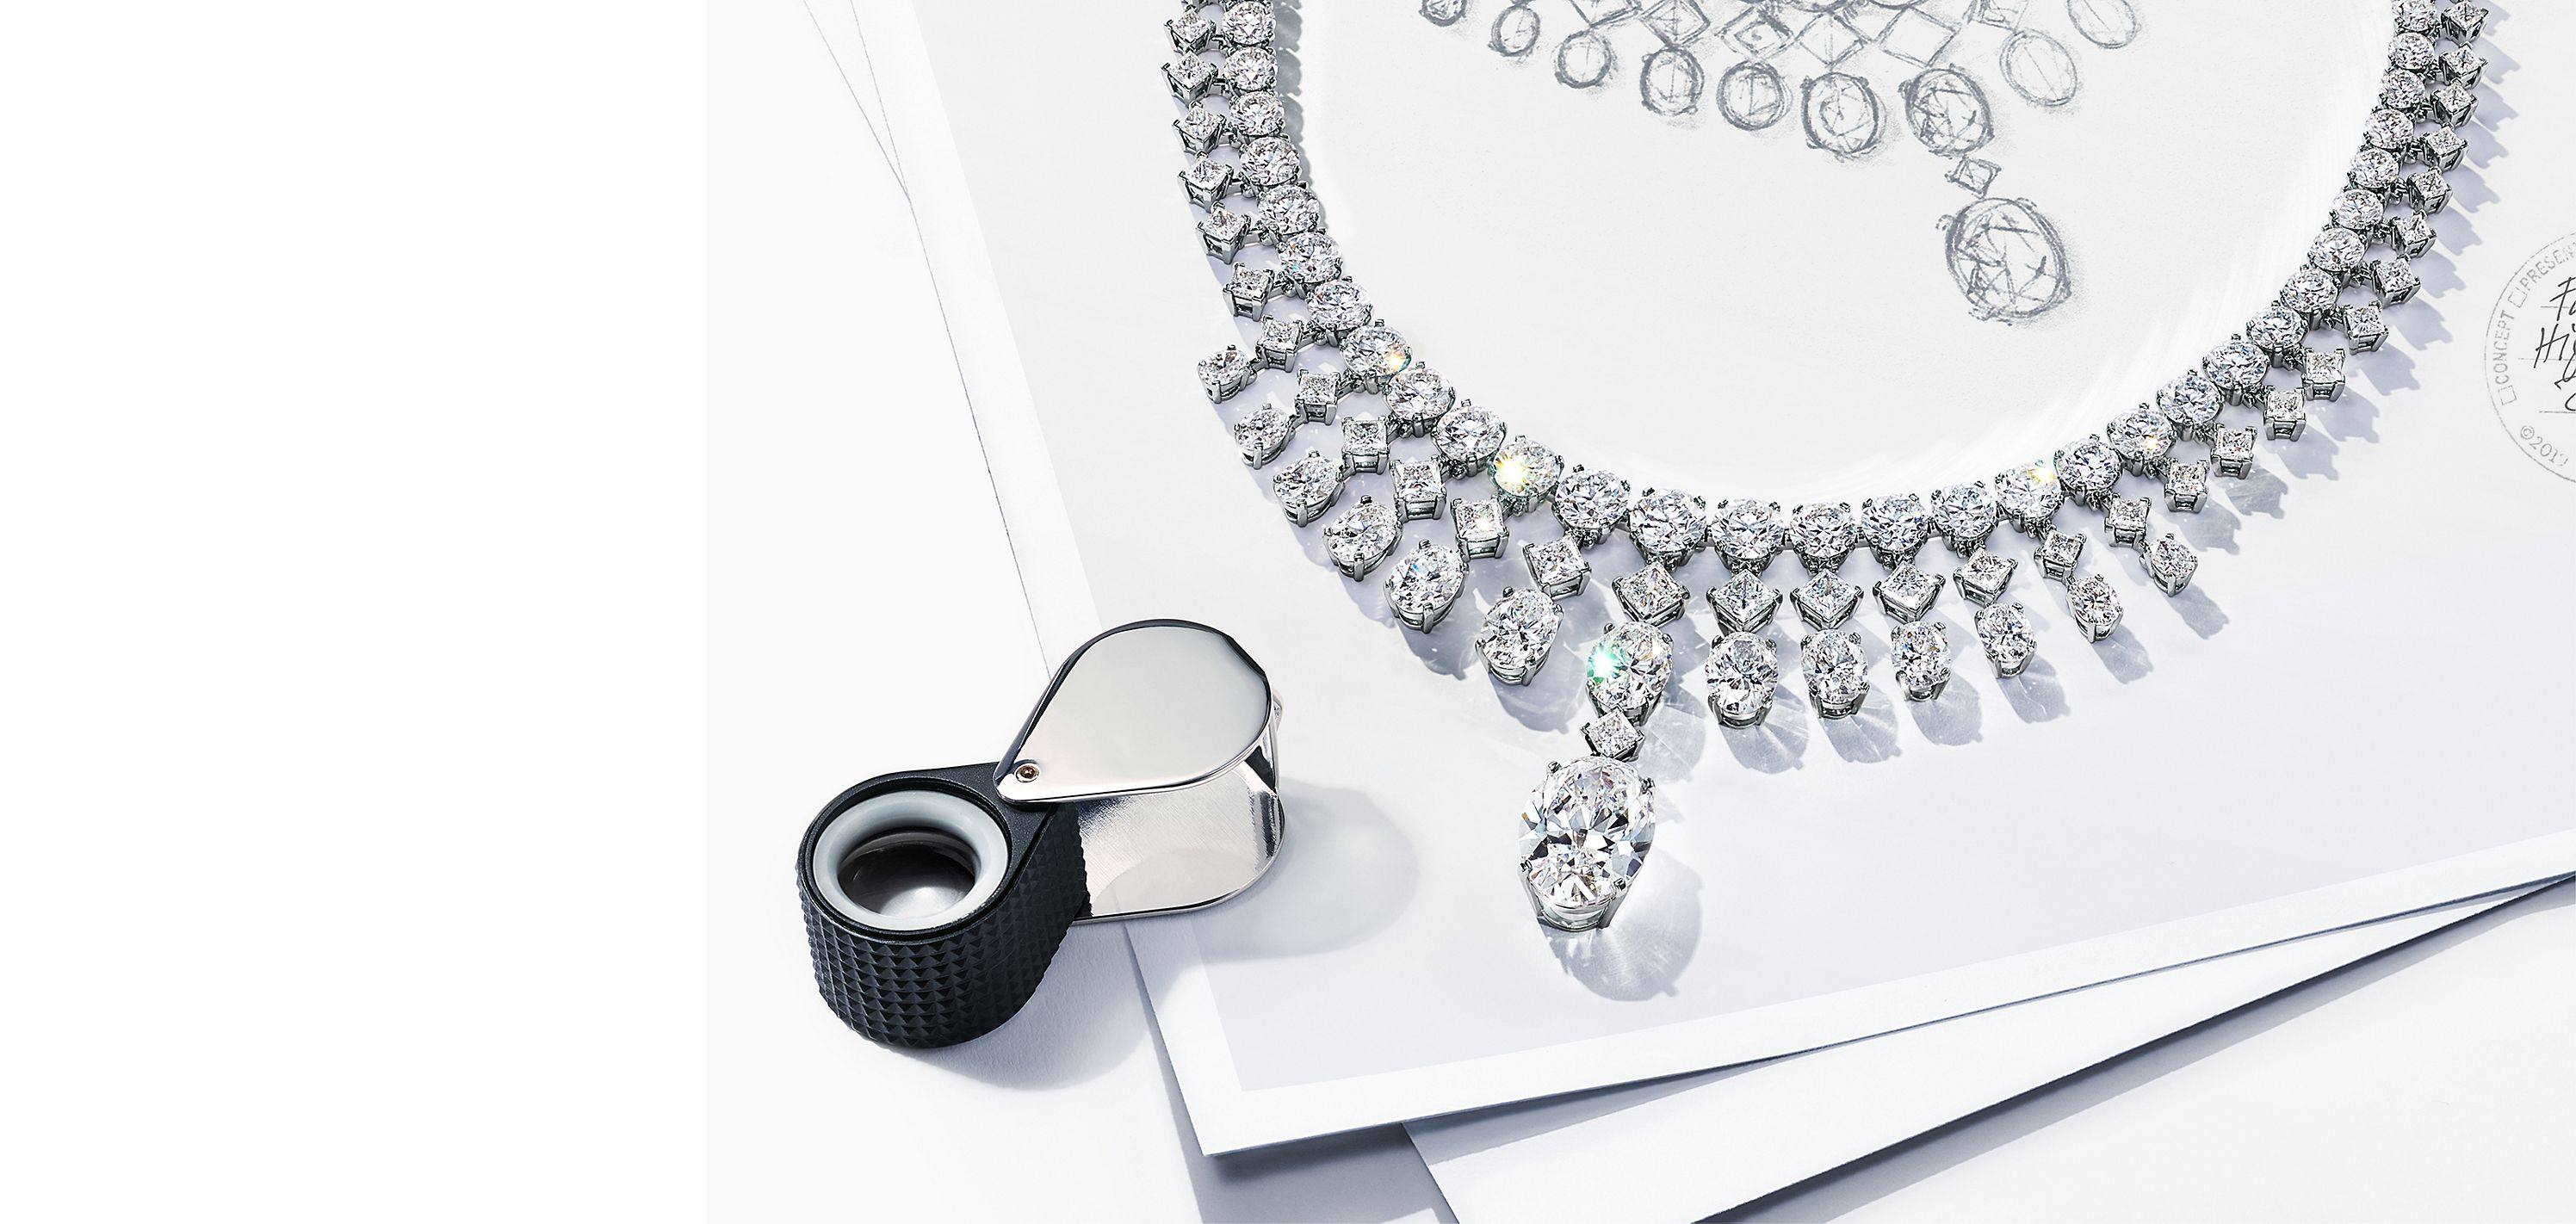 Diamond Necklace from the Tiffany High Jewelry Collection Fall 2020